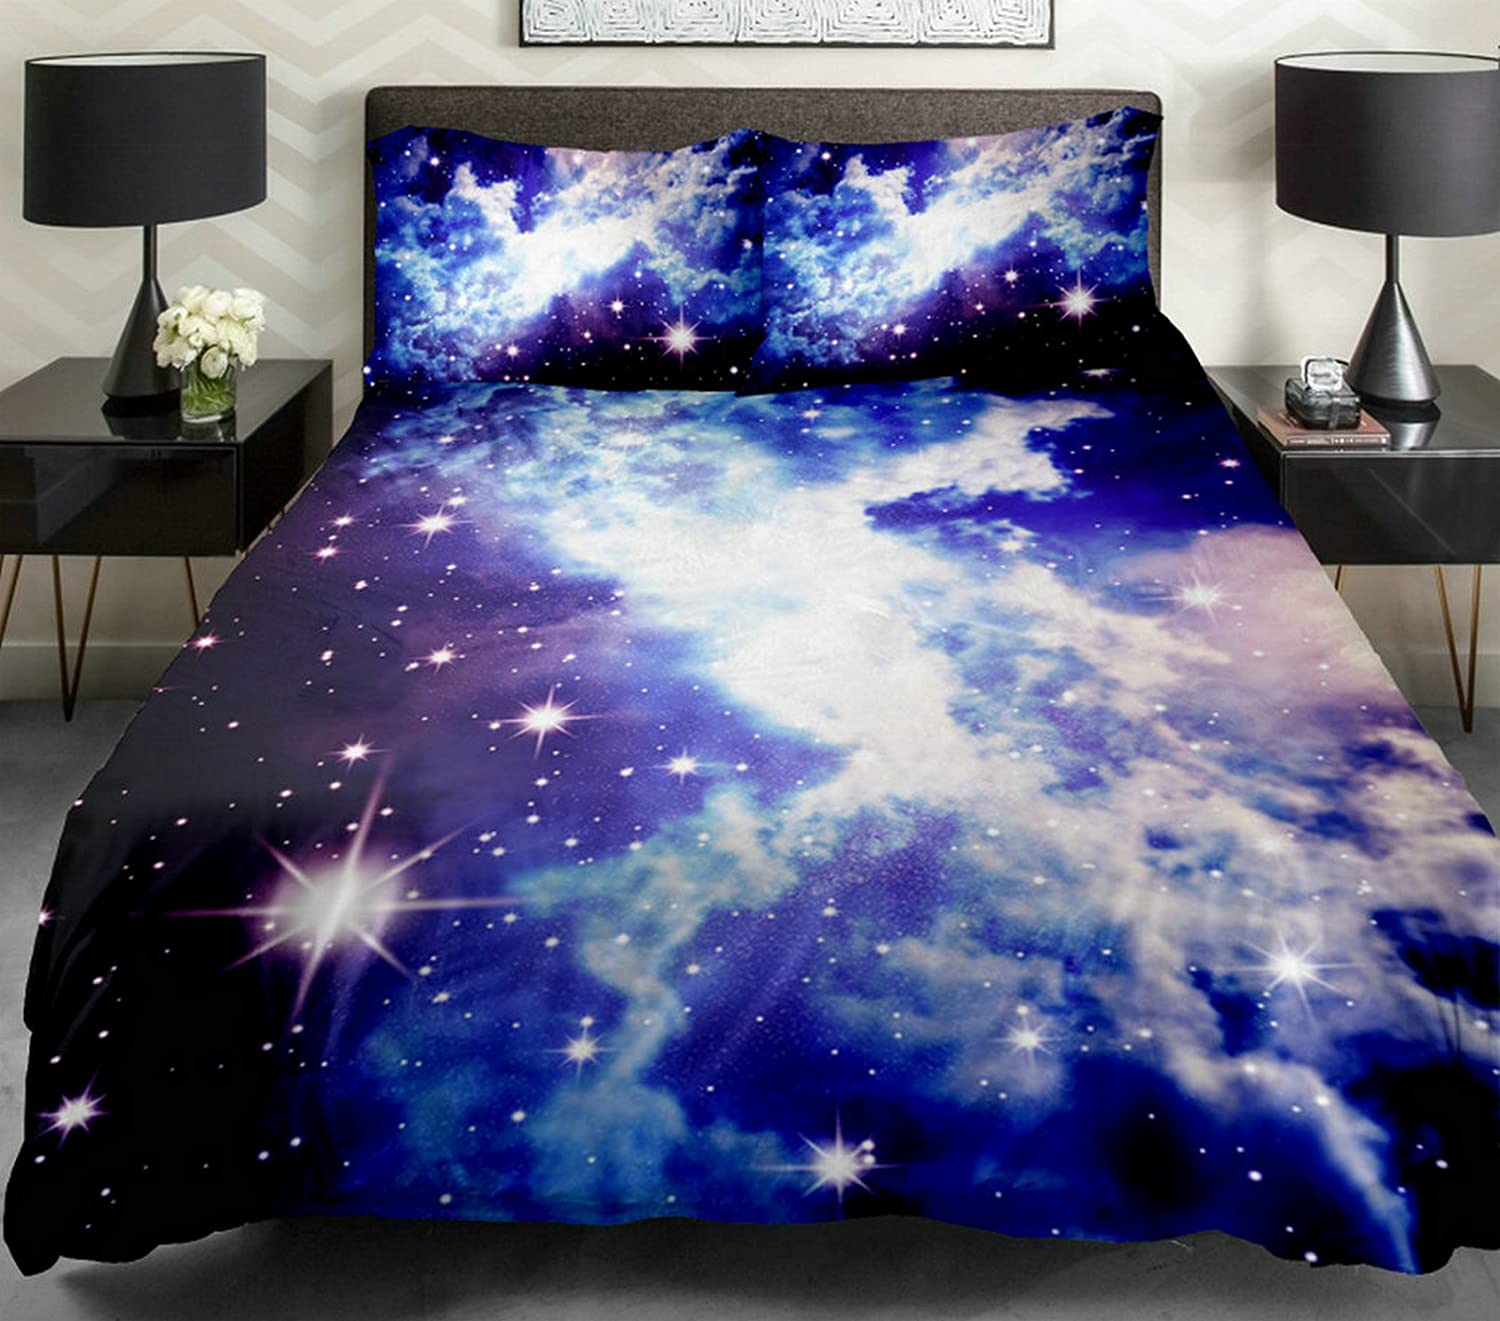 amazoncom anlye galaxy duvet cover galaxy teen bedding galaxy sheets space sheets girls bedding set purple bedding with 2 matching throw pillow covers for - Galaxy Bedding Set